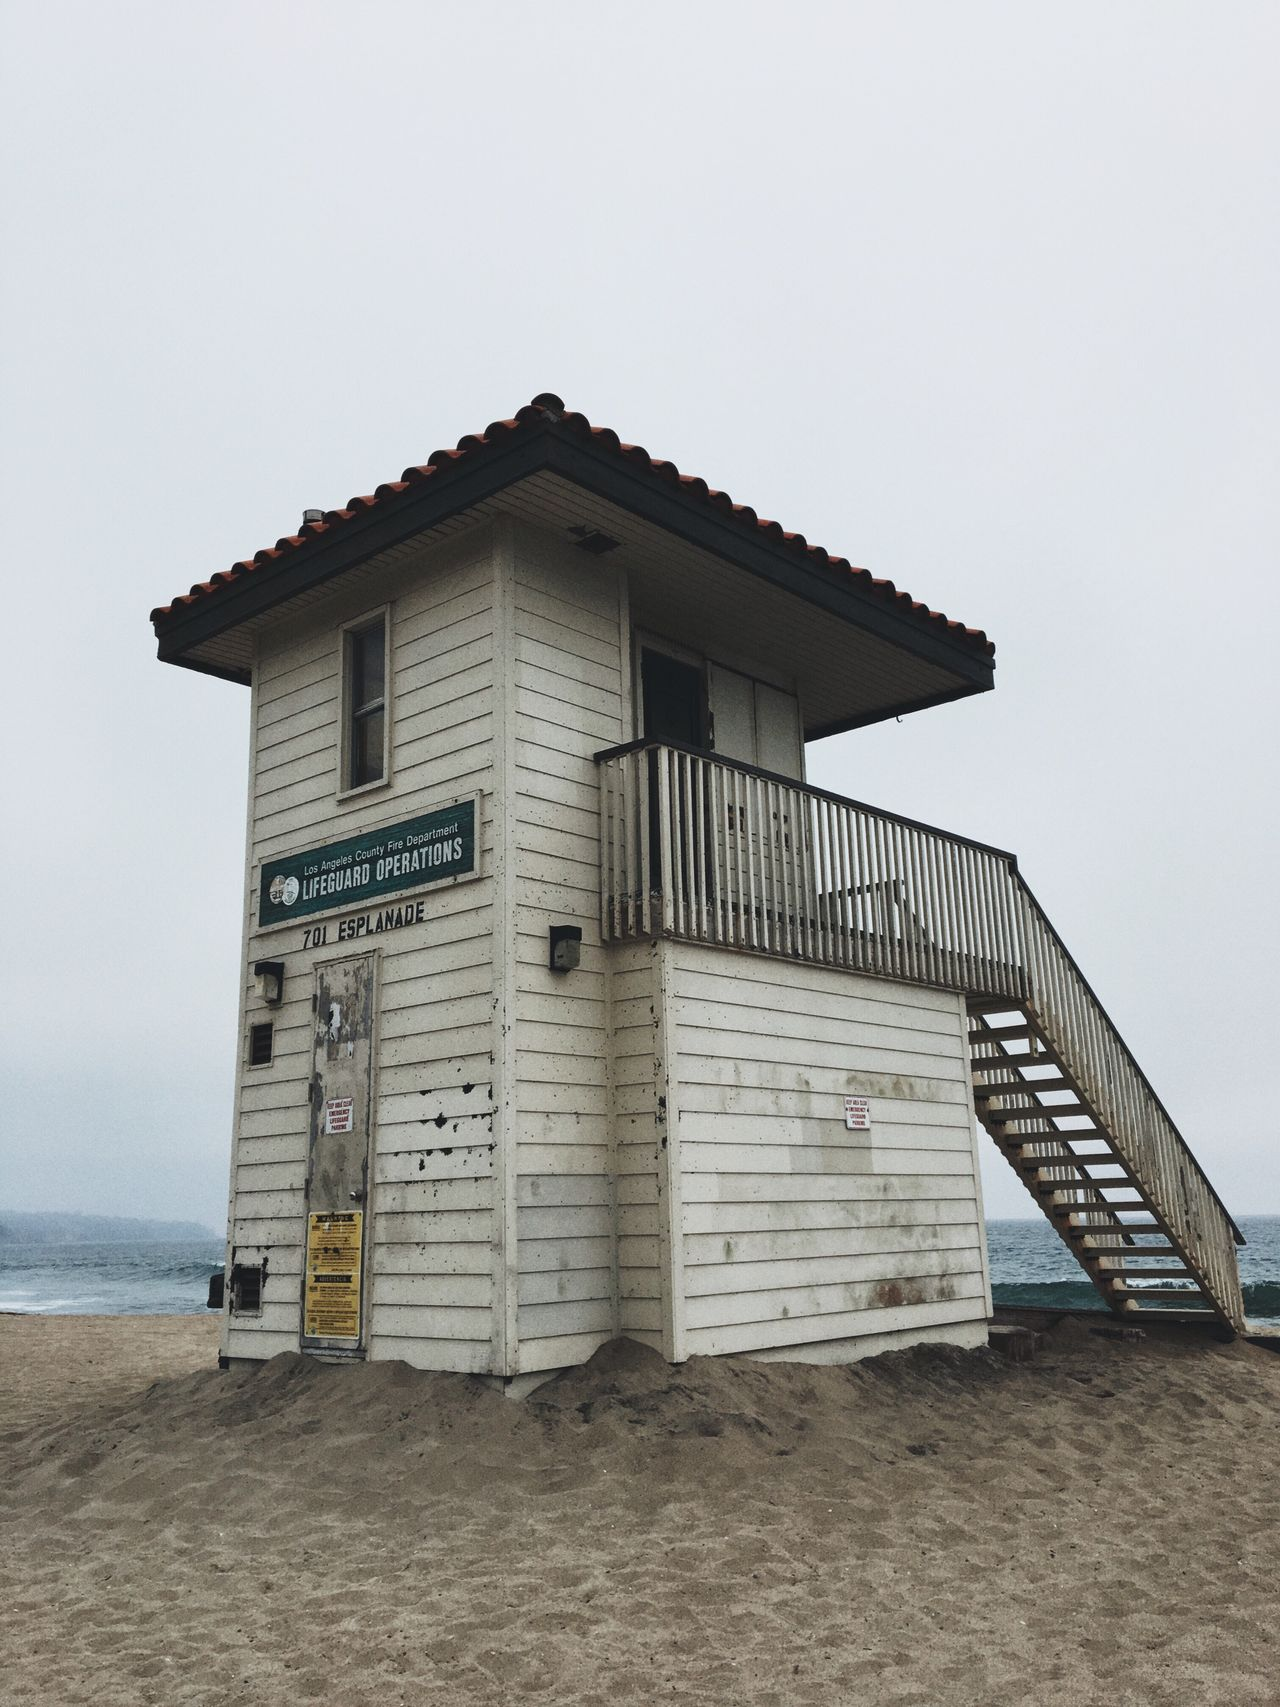 Beach Built Structure Sand Architecture Lifeguard Hut Day Outdoors No People Sea Building Exterior Sky Clear Sky Water Nature Horizon Over Water Lifeguard